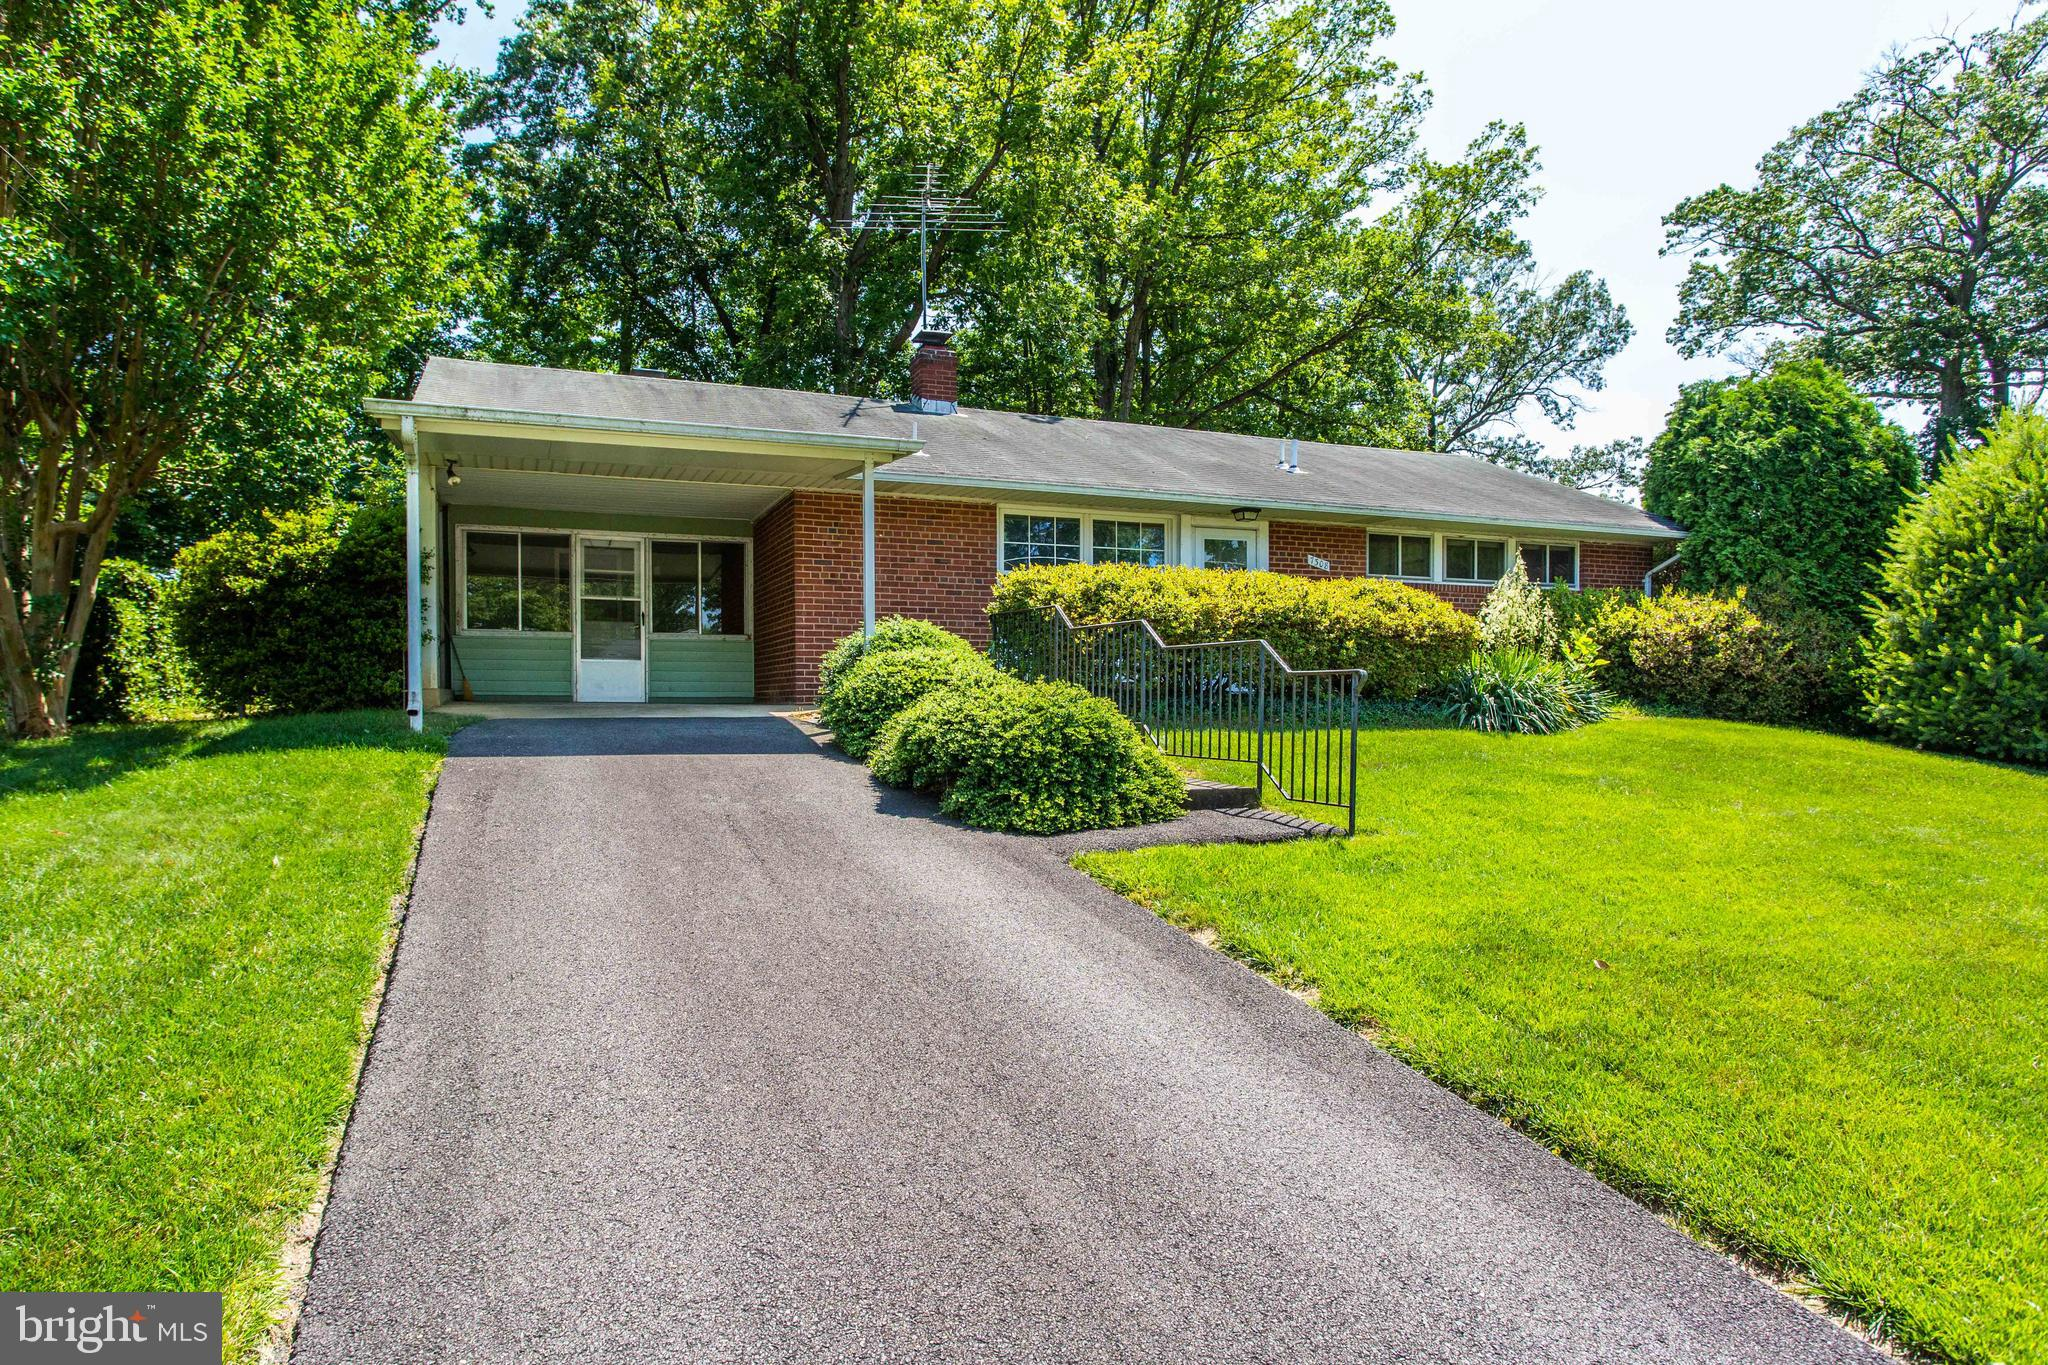 Amazing opportunity on 0.24 Acres of natures beauty! This charming Ranch/rambler offers 3 Bedrooms, 1.5 Baths and endless options for any lifestyle. A spacious floor plan greets you as you enter the sun-filled family room with dual-sided brick fireplace, built-ins and glass sliders to the covered patio overlooking the beautiful grounds. Offering warmth to both the Family room and Kitchen, this brick fireplace is the perfect option for some extra heat in the colder weather! The Kitchen features ample cabinetry and a perfect eating area with double windows to let the sun stream in. Easily flow from the Kitchen into the sun porch with a wall of windows and access to the patio.  A bonus room connected to the laundry room is just waiting for you to make it your own! Located in a prime Springfield neighborhood, this home is just minutes to major commuter highways, Franconia-Springfield Metro/VRE Station, Town Center, and more!